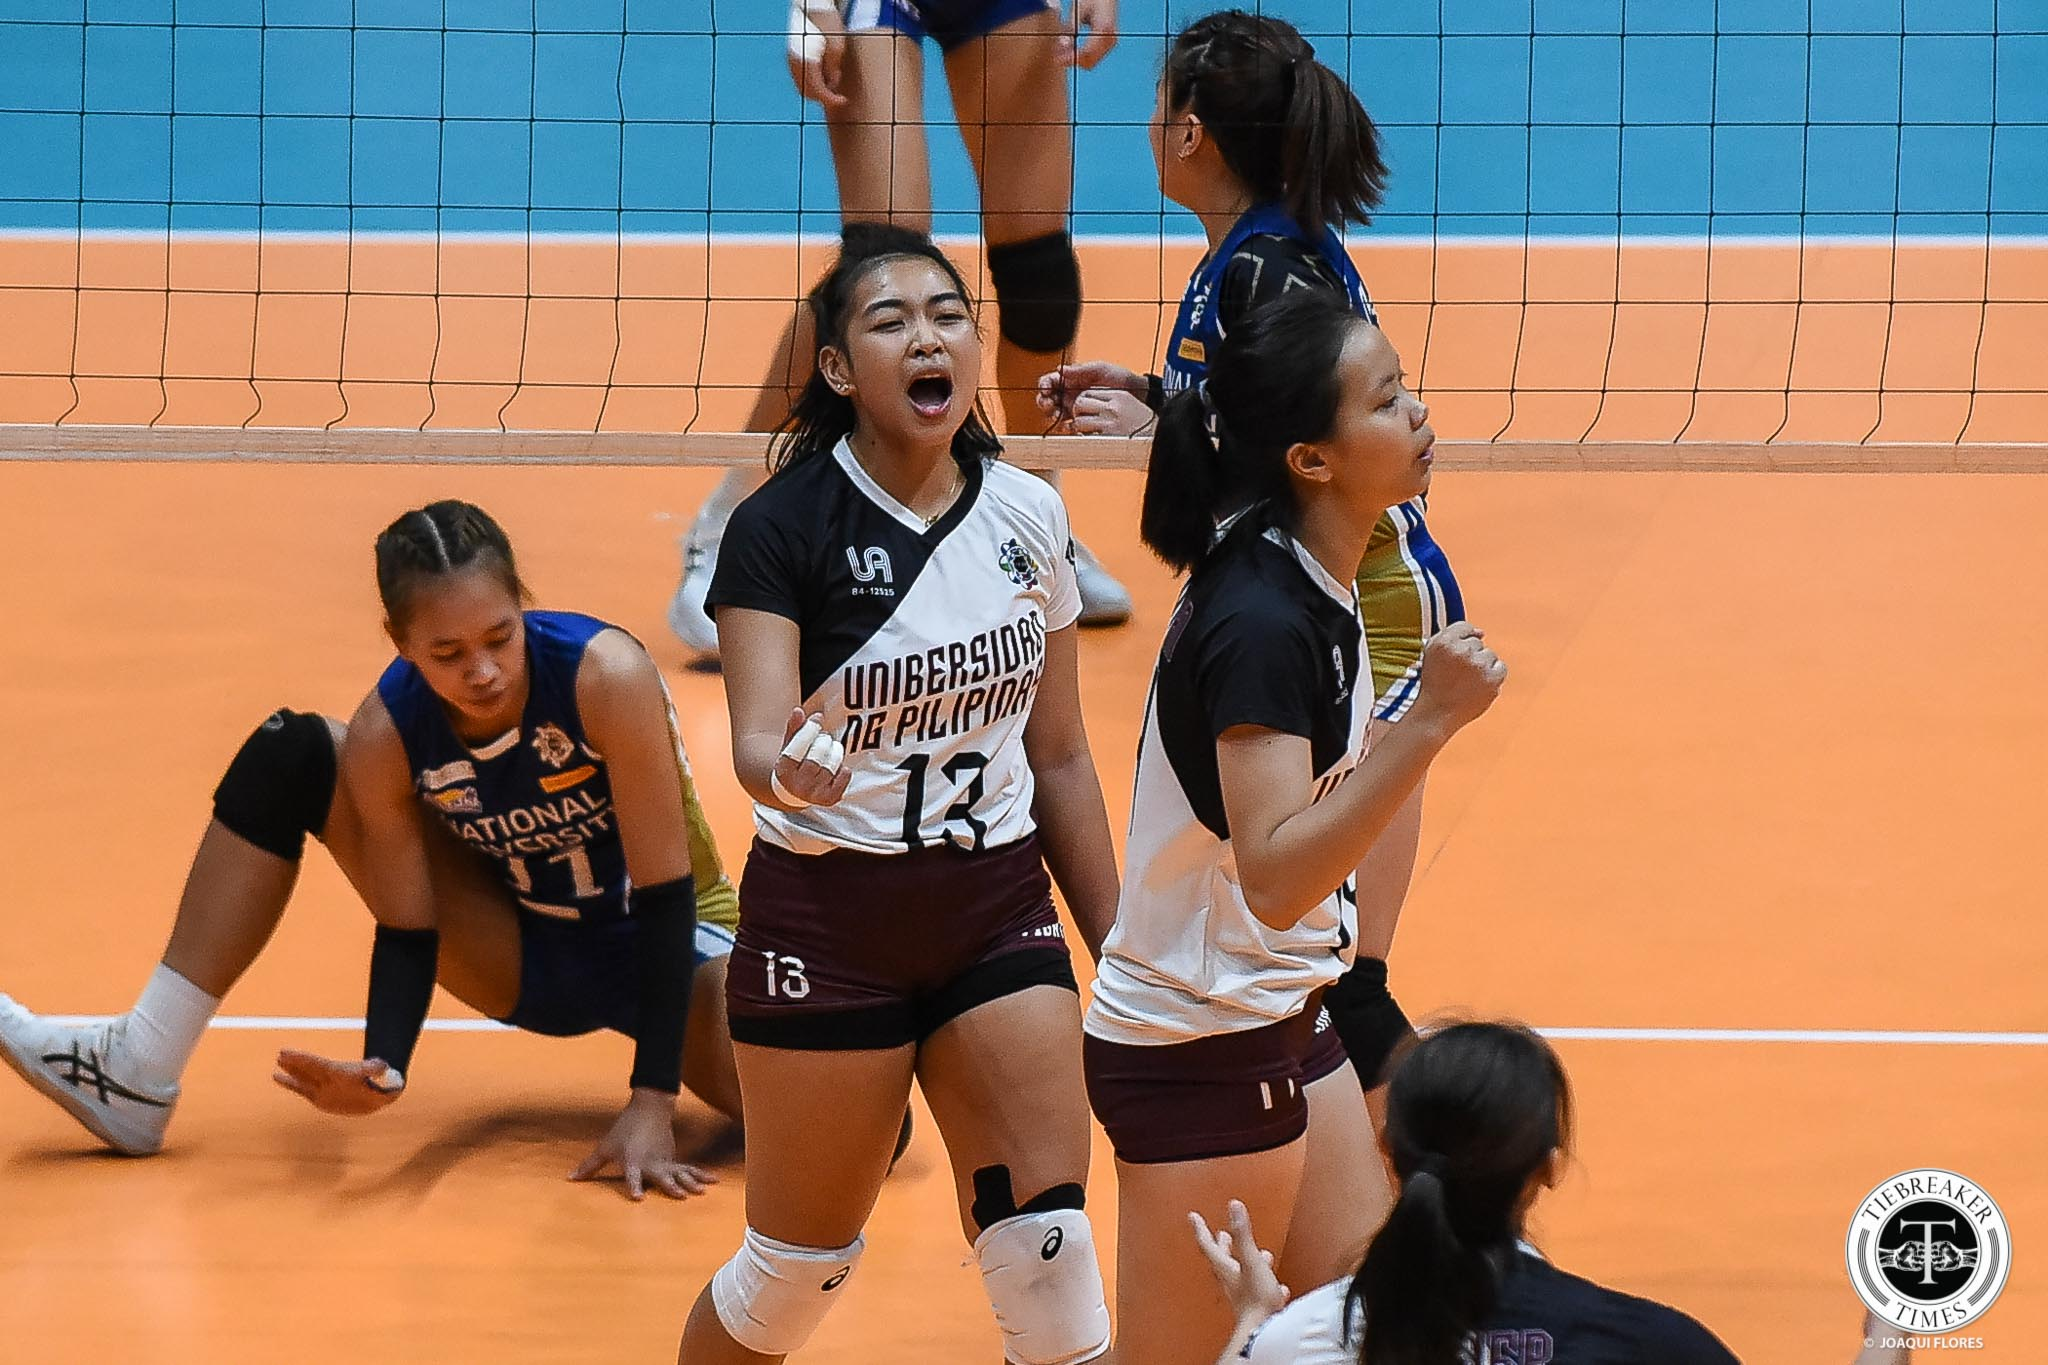 Tiebreaker Times Okumu expects UP Lady Maroons to bounce back: 'We are no longer a team in progress' News UAAP UP Volleyball  UP Women's Volleyball UAAP Season 81 Women's Volleyball UAAP Season 81 Godfrey Okumu